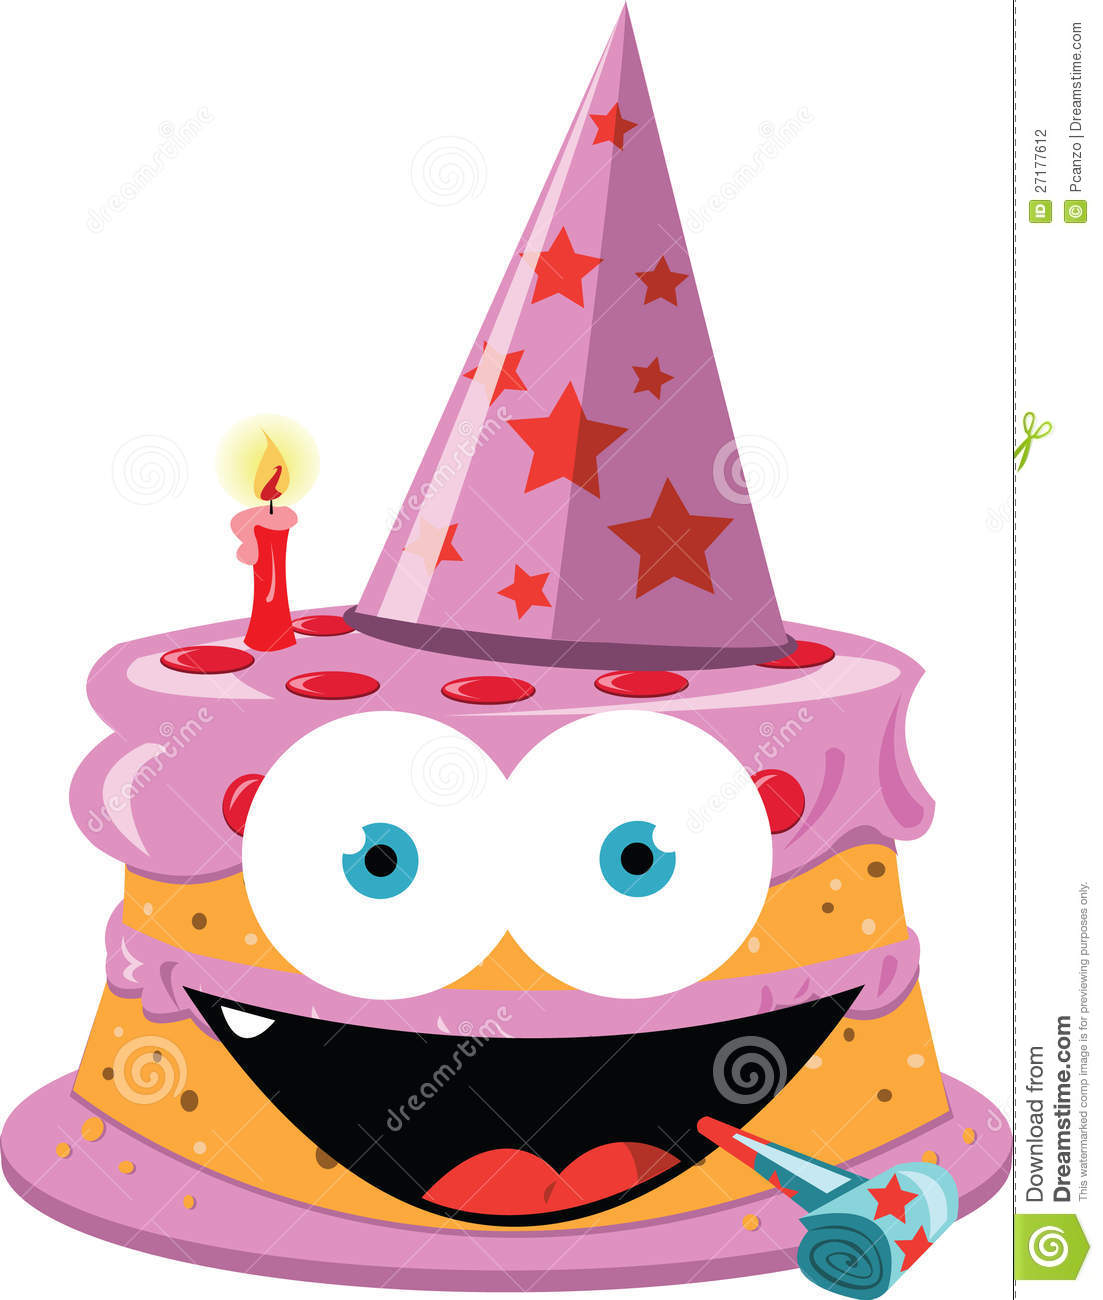 Birthday cake clipart funny jpg stock Funny Cake - Girly Version Stock Photography - Image: 27177612 jpg stock